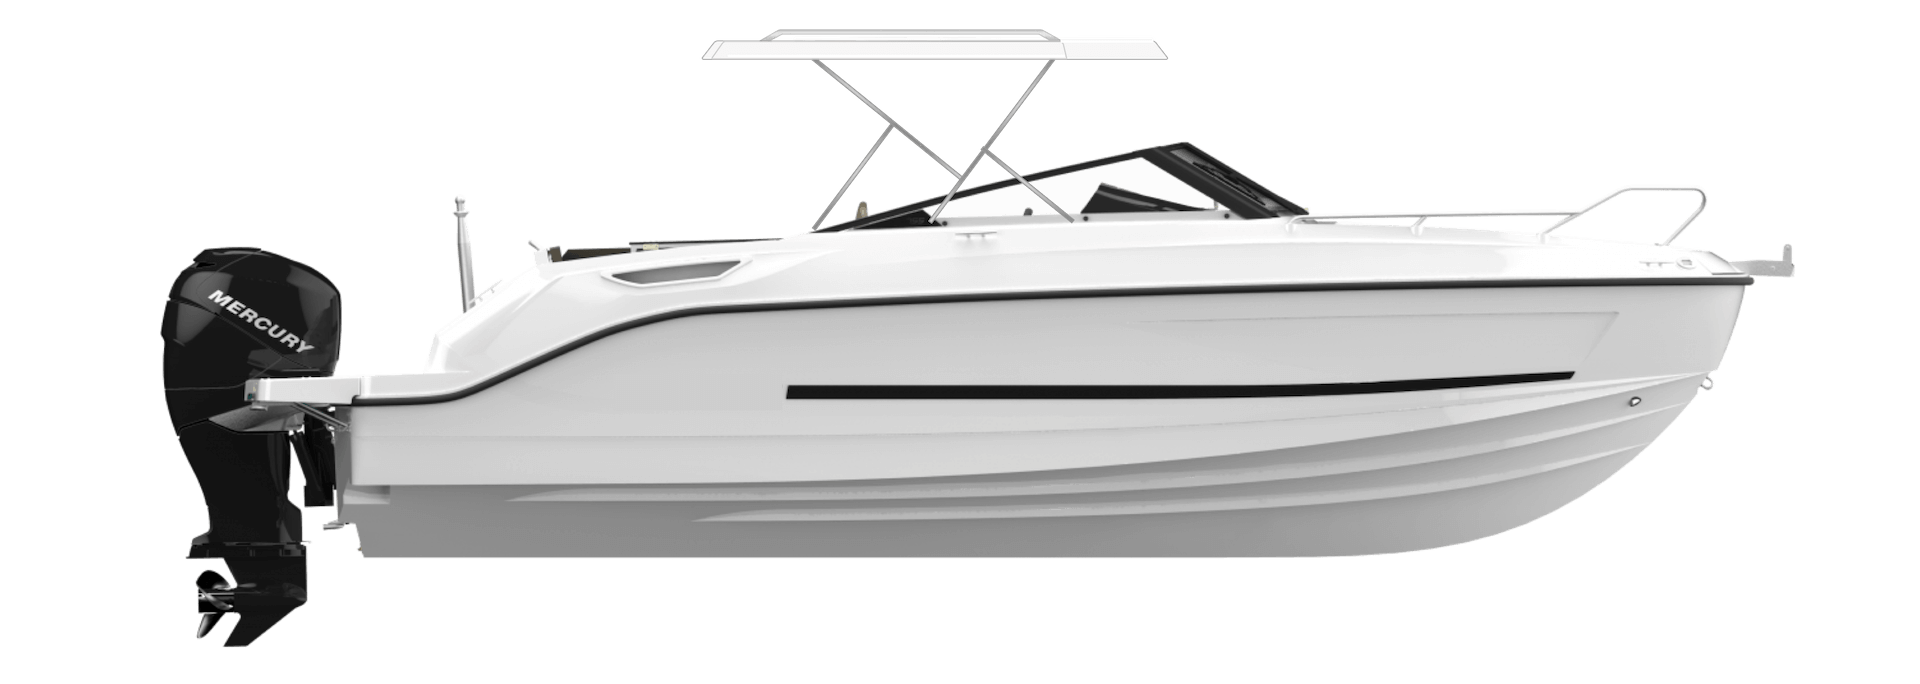 hard-top-boat-side-view-small